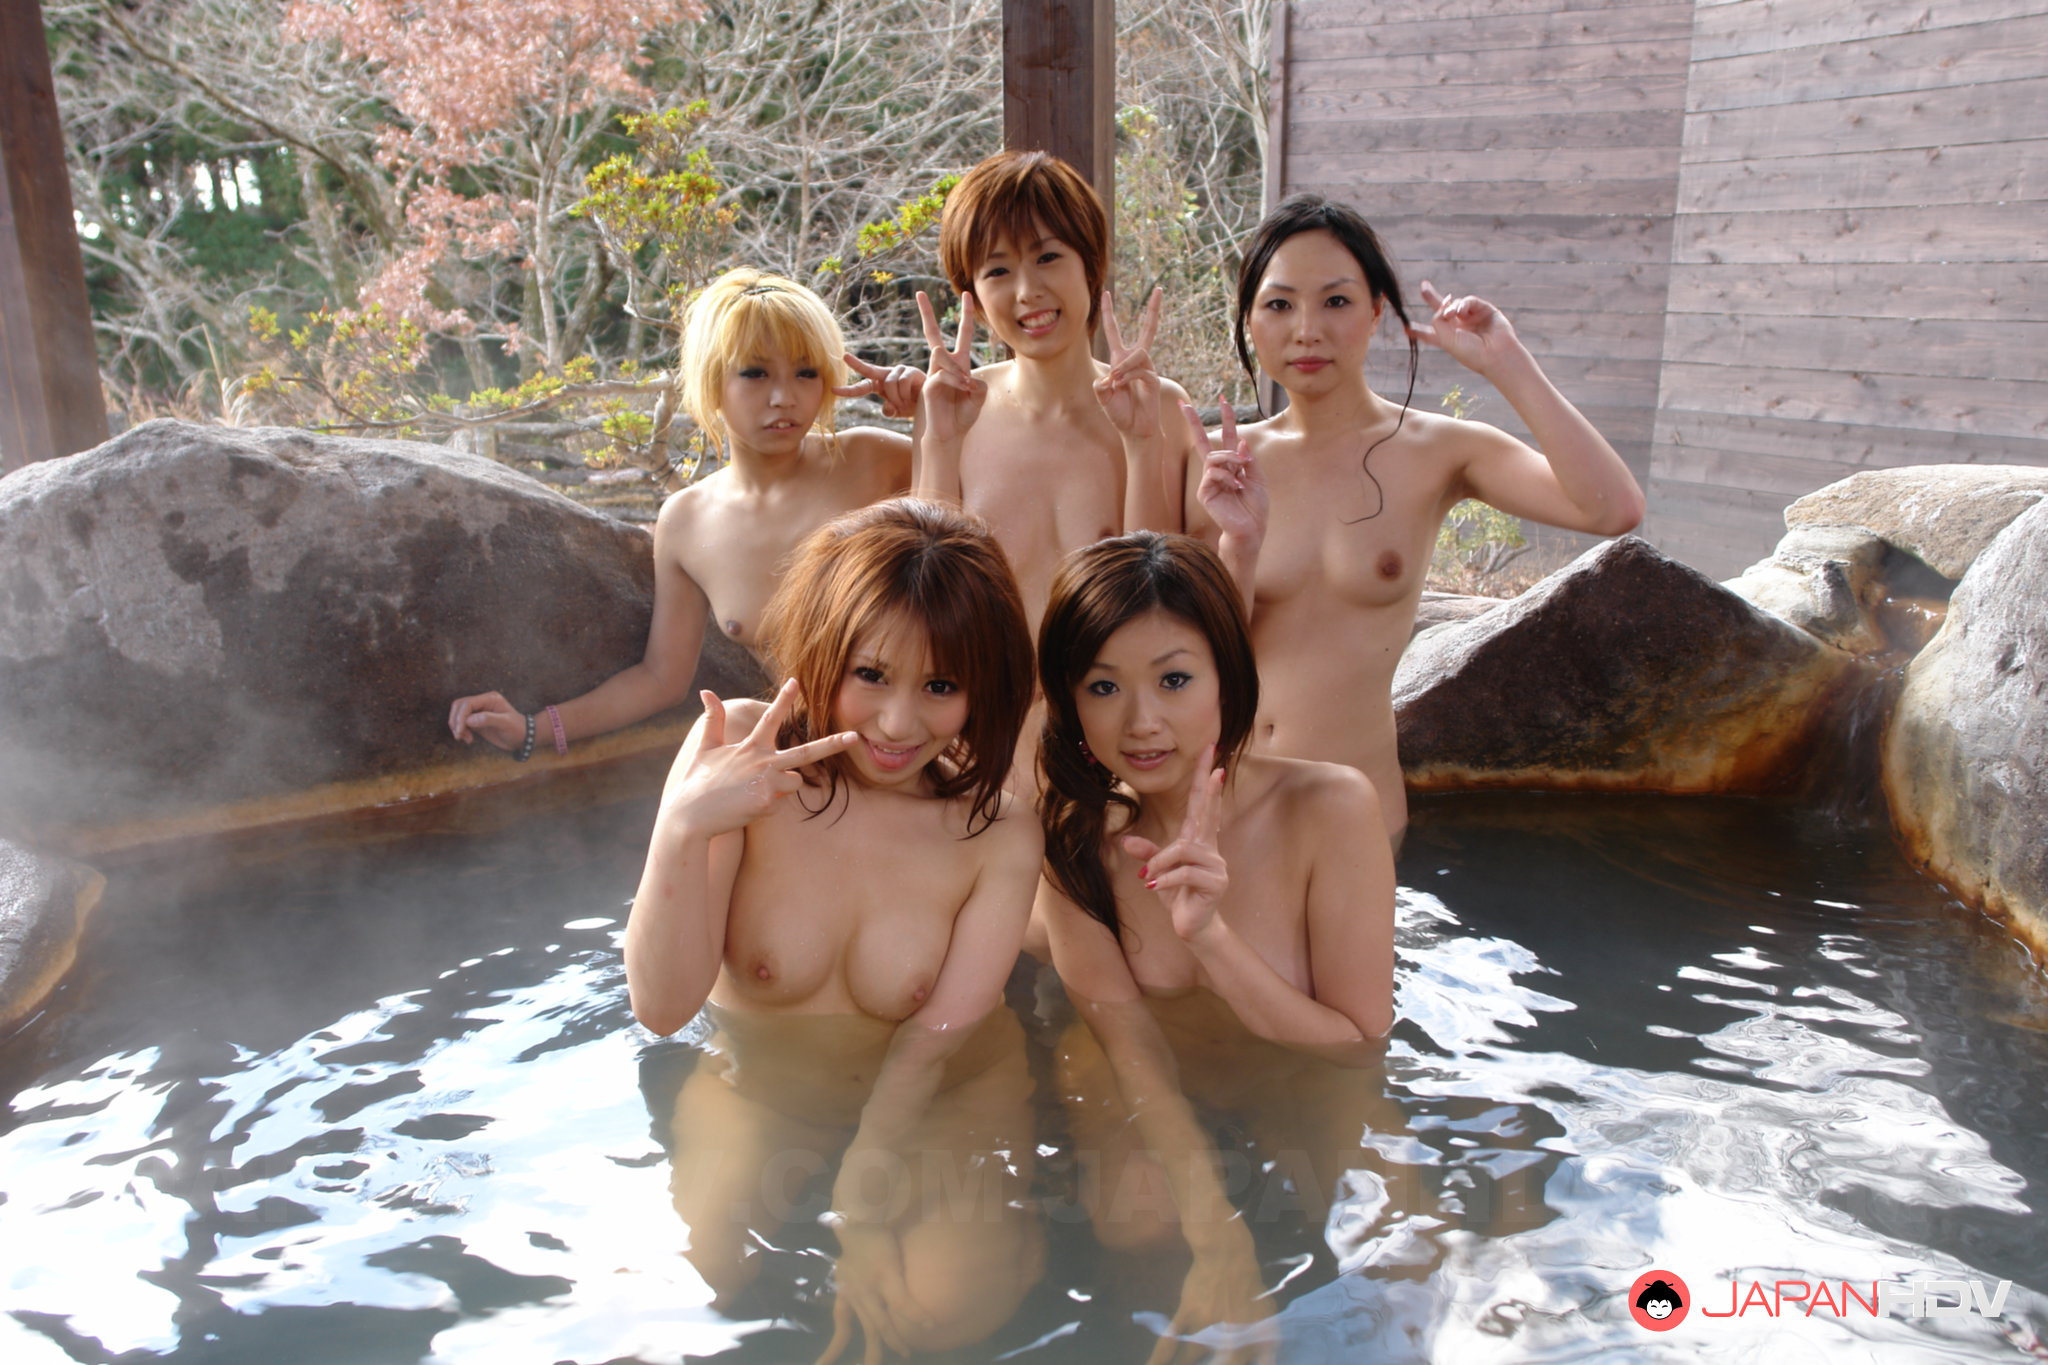 group asian women nude